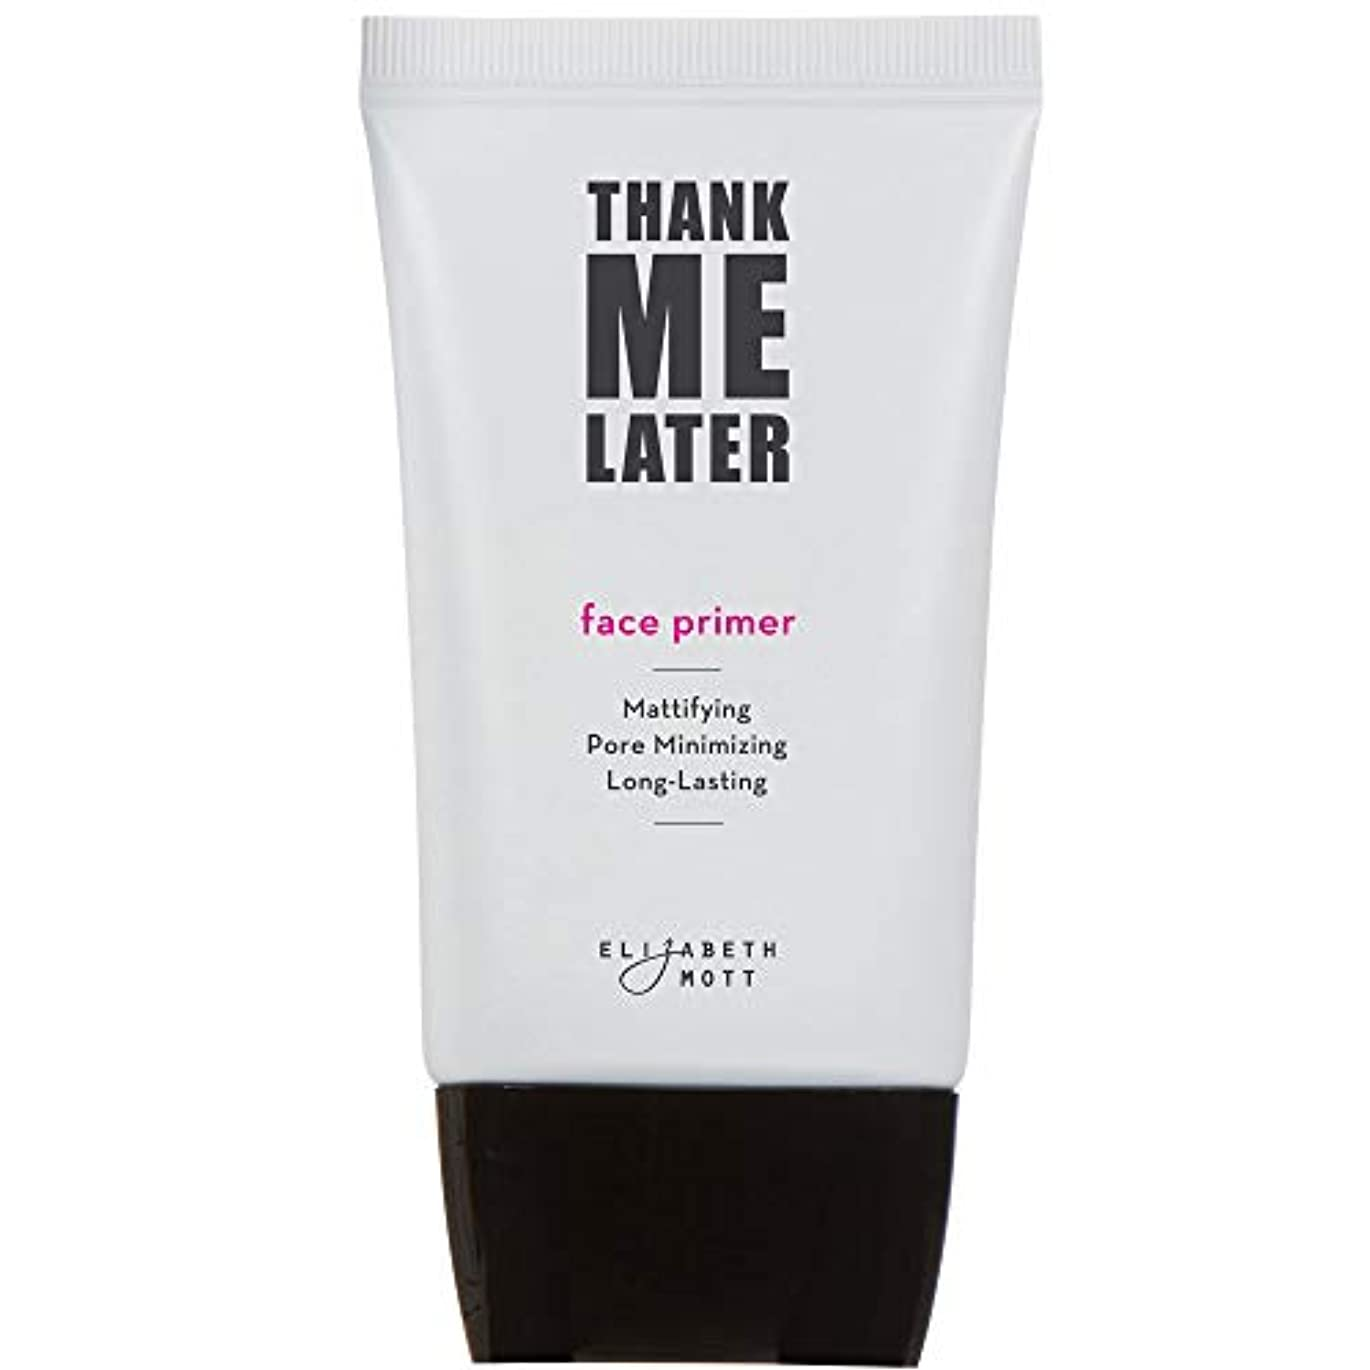 まっすぐ小石本物のThank Me Later Primer. Paraben-free and Cruelty Free. … Face Primer (30G) フェイスプライマー(下地)